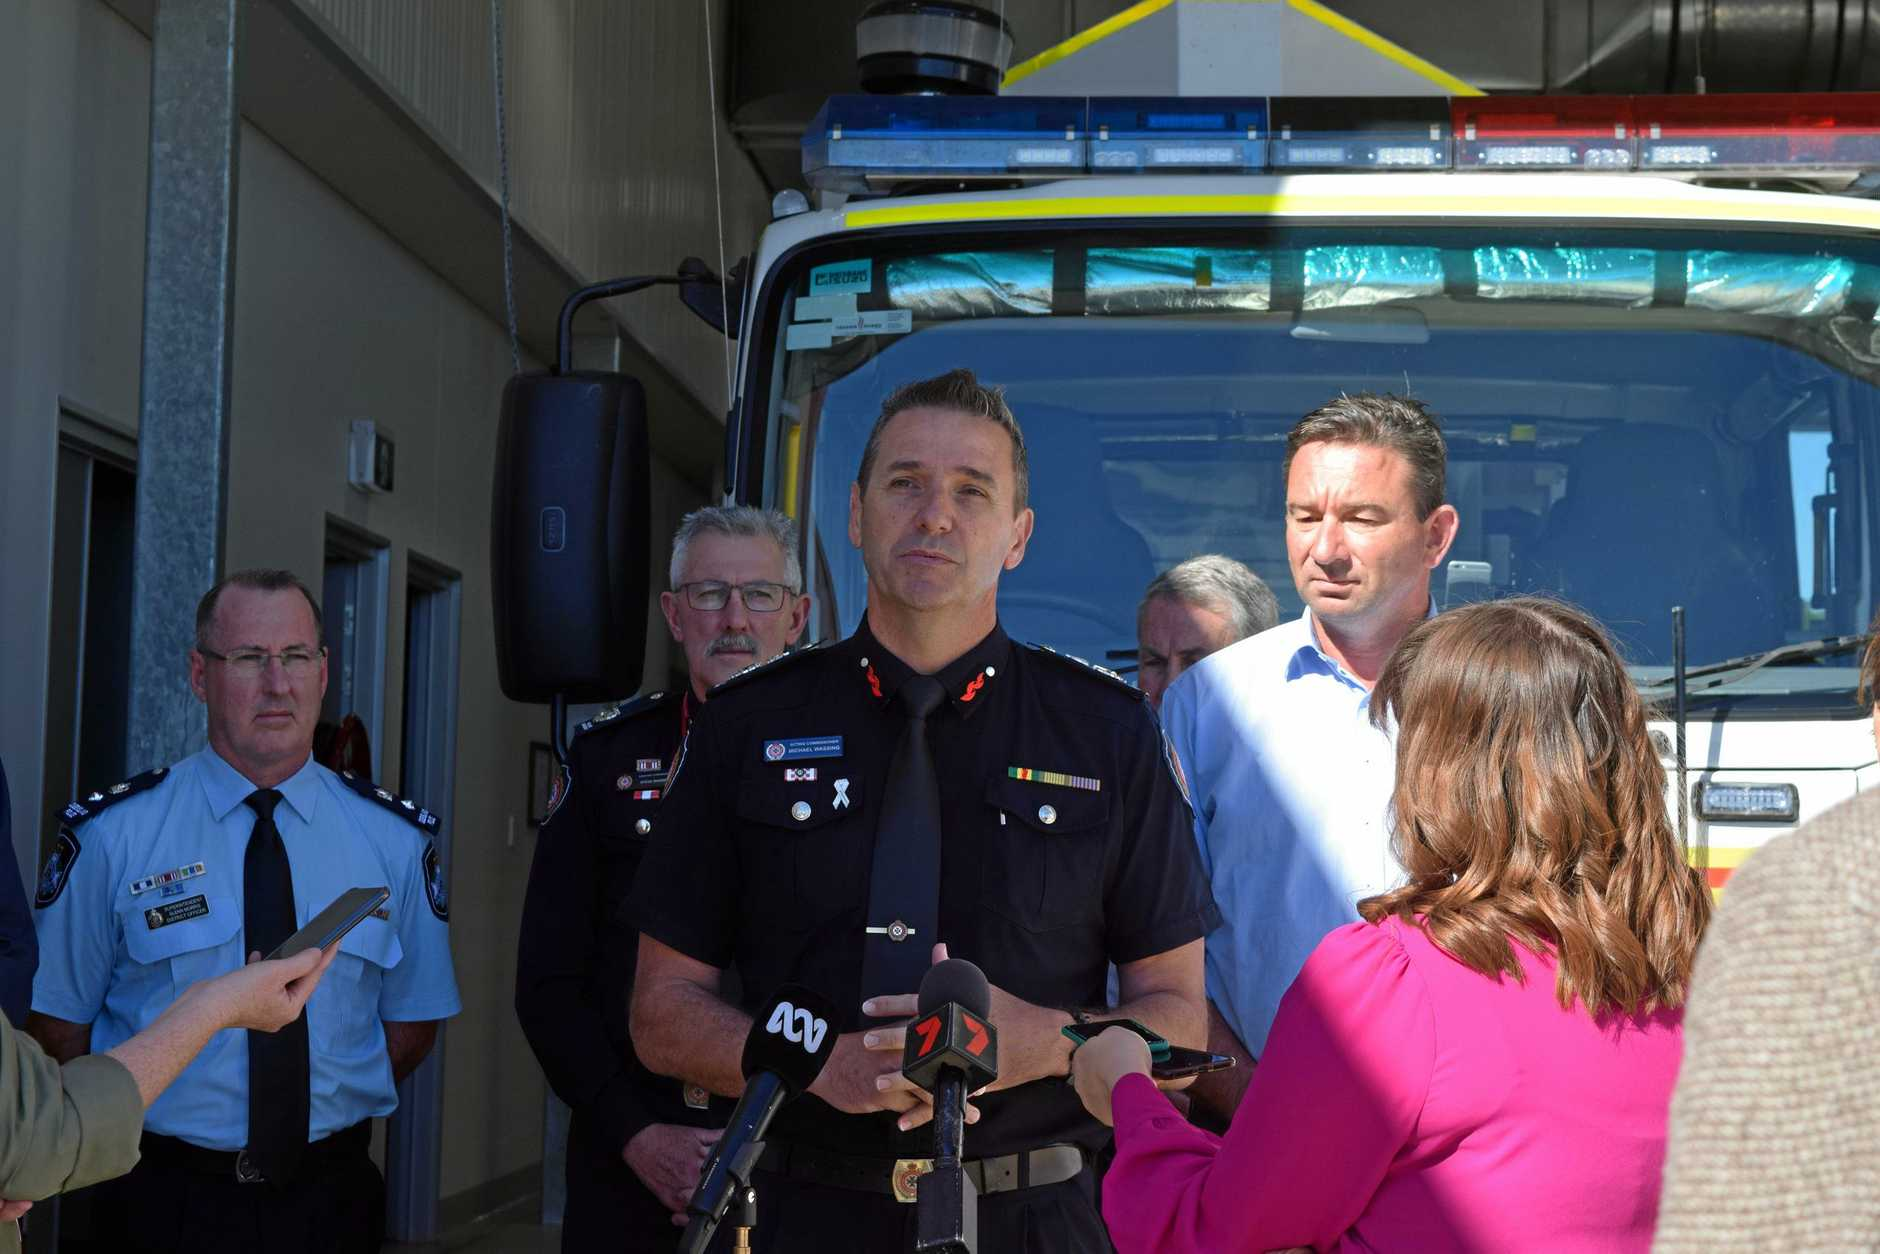 The Queensland Deputy Commissioner, Mike Wessing at the Queensland Fire Department Emergency Services station in Mackay.